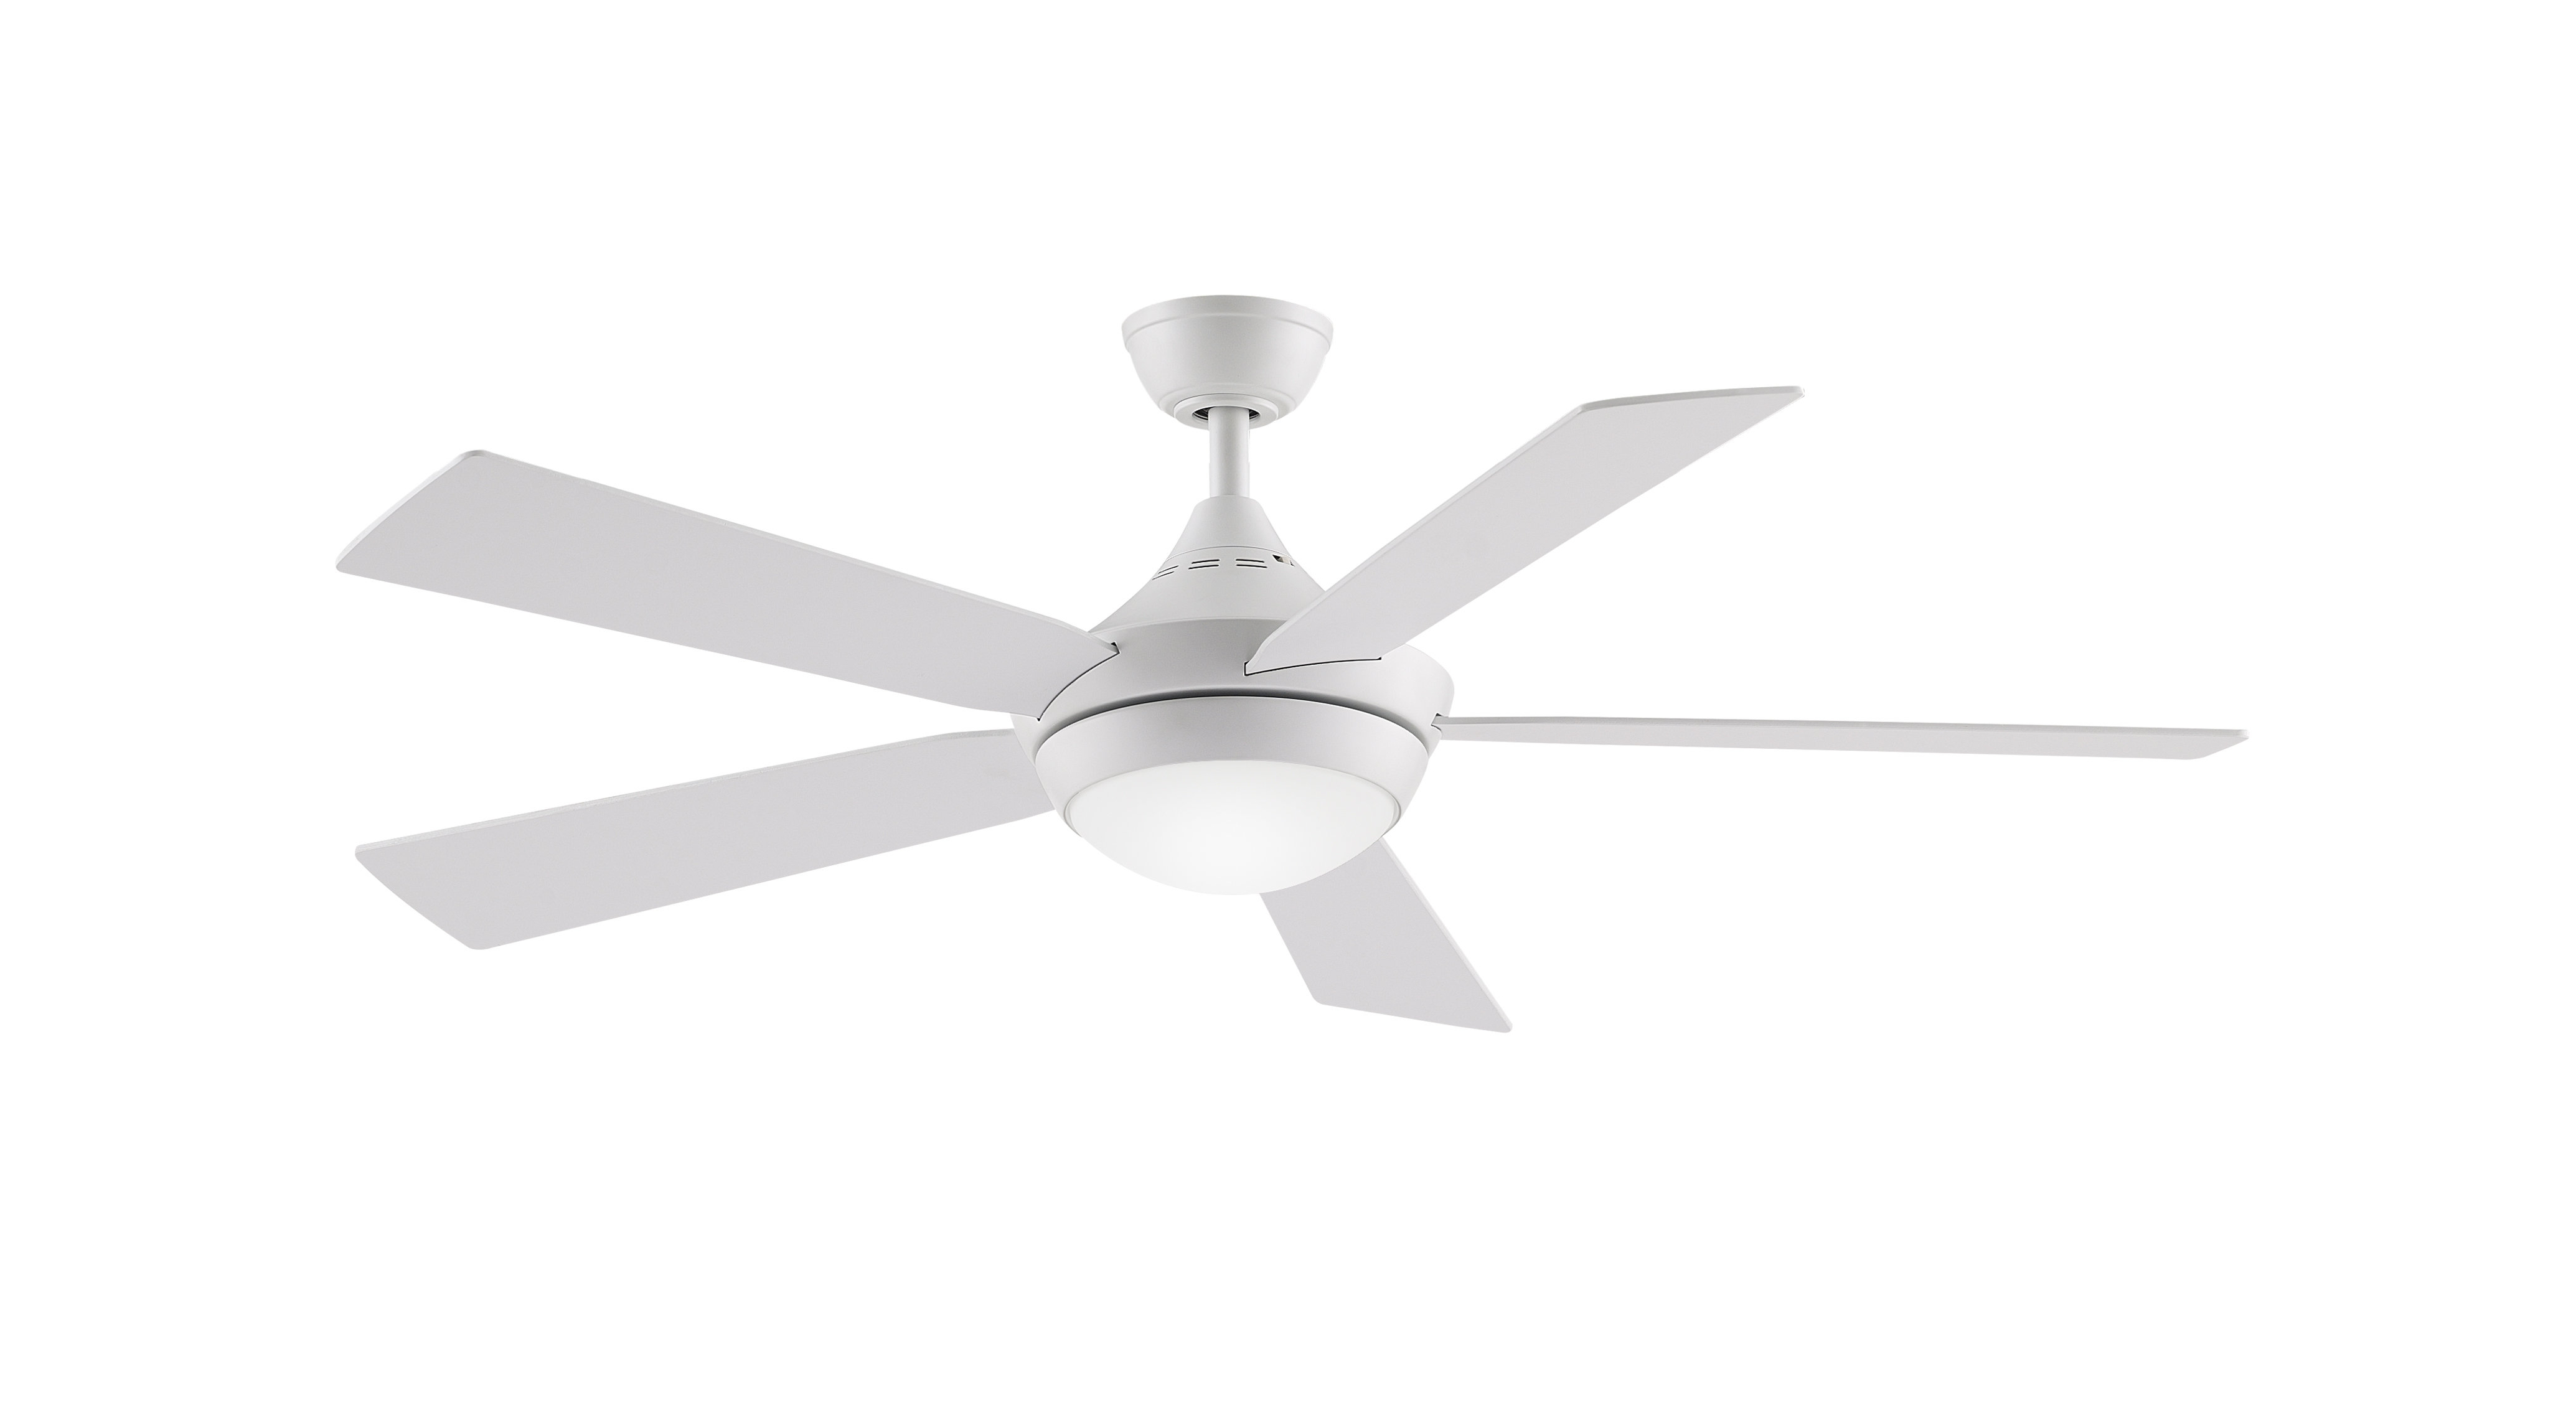 """Most Recent Calkins 5 Blade Ceiling Fans In 52"""" Darrion 5 Blade Led Ceiling Fan With Remote, Light Kit Included (View 17 of 20)"""